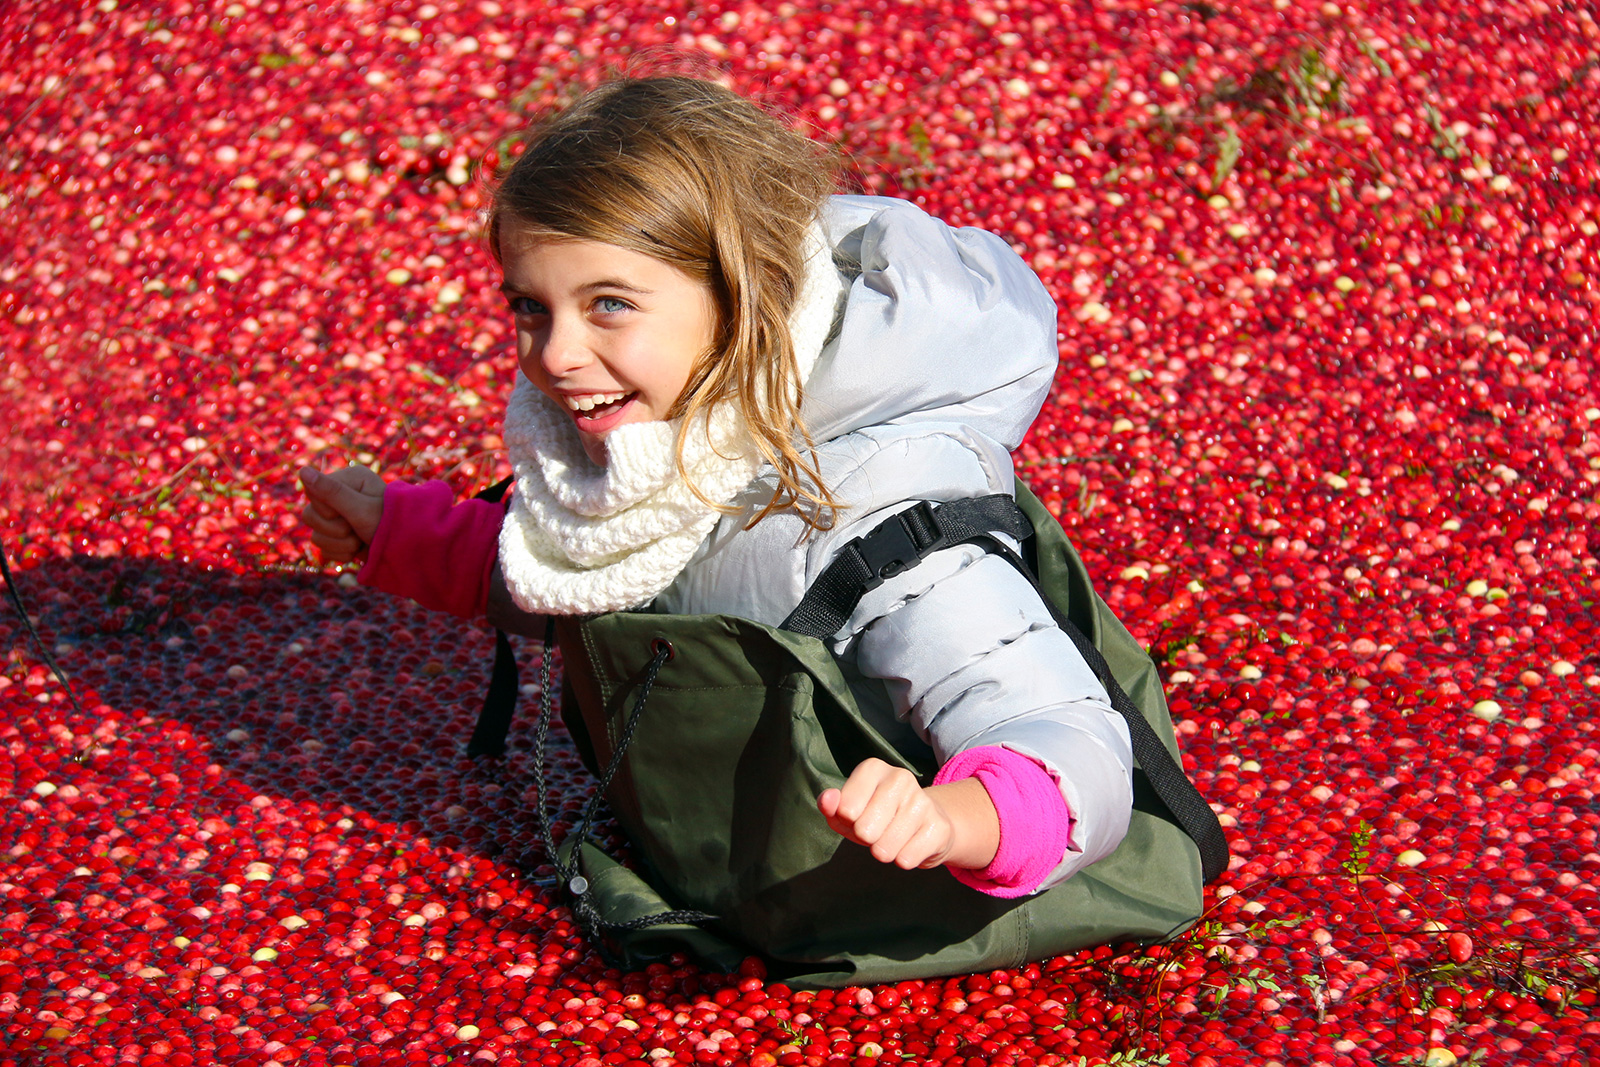 smiling girl standing in floating cranberries